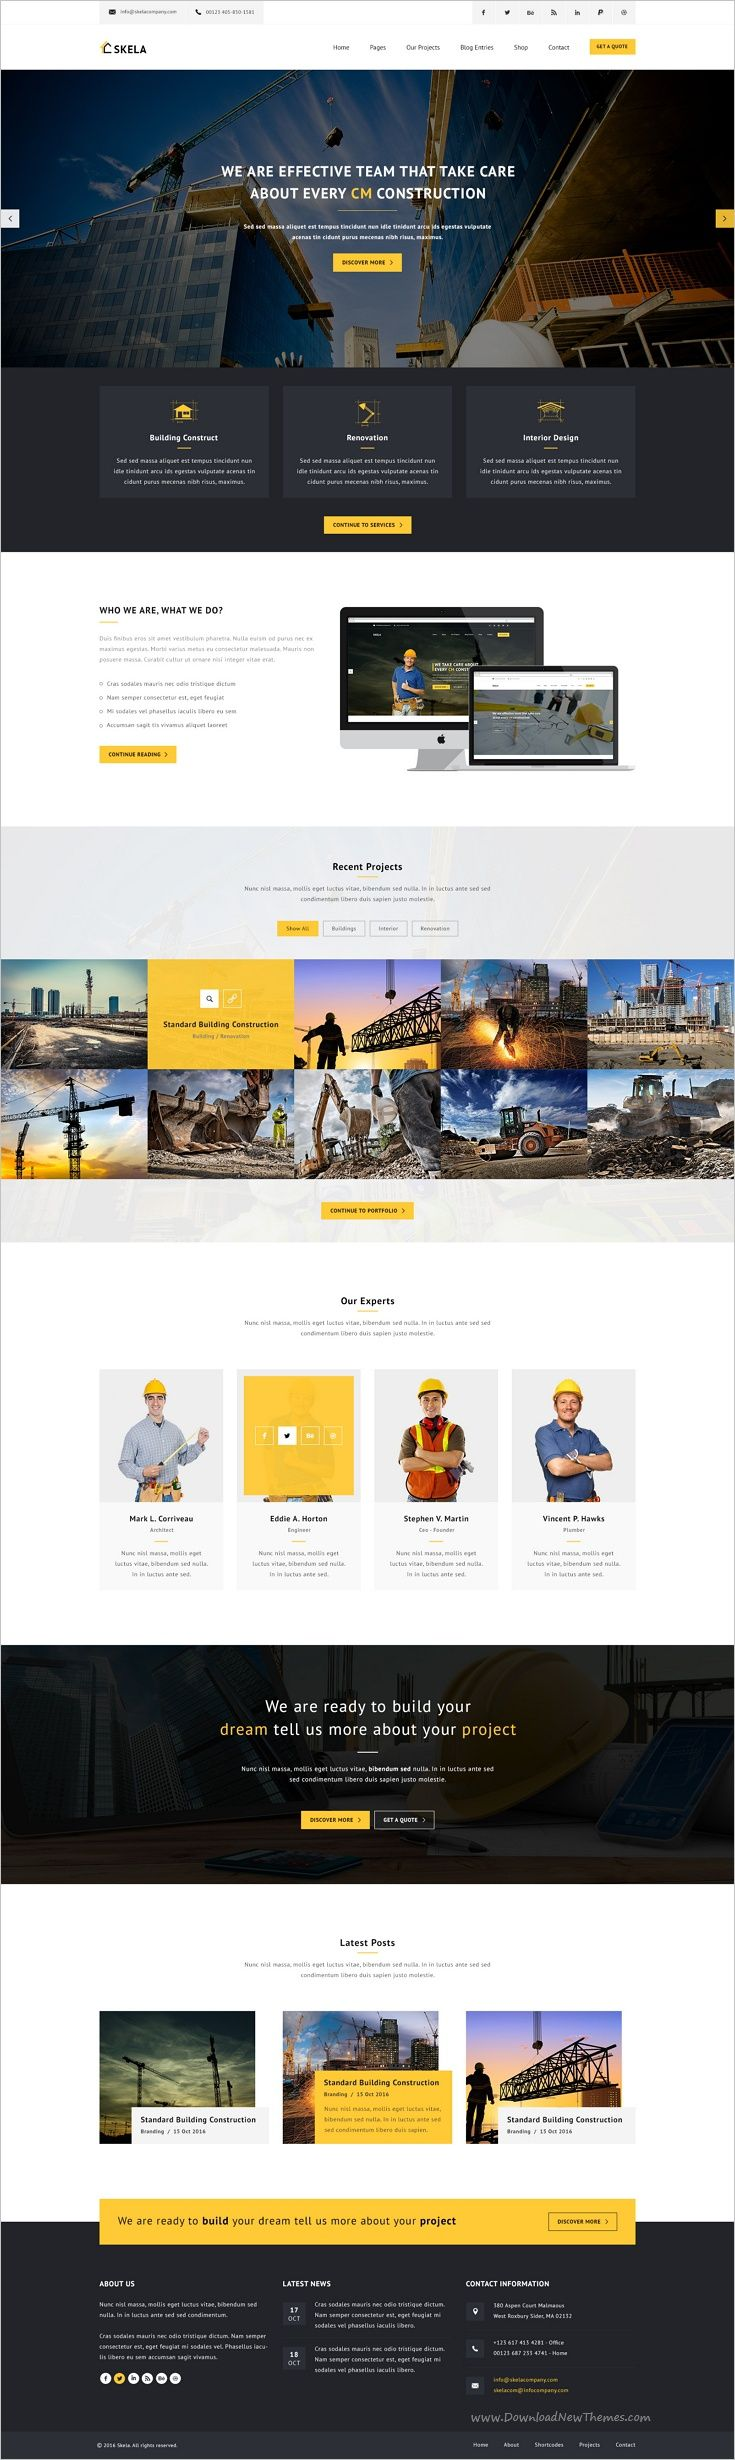 Skela is a wonderful #PSD #theme for #construction & building companies which are looking for clean and modern design for their #website download now➩ https://themeforest.net/item/skela-construction-building-psd-template/18583666?ref=Datasata